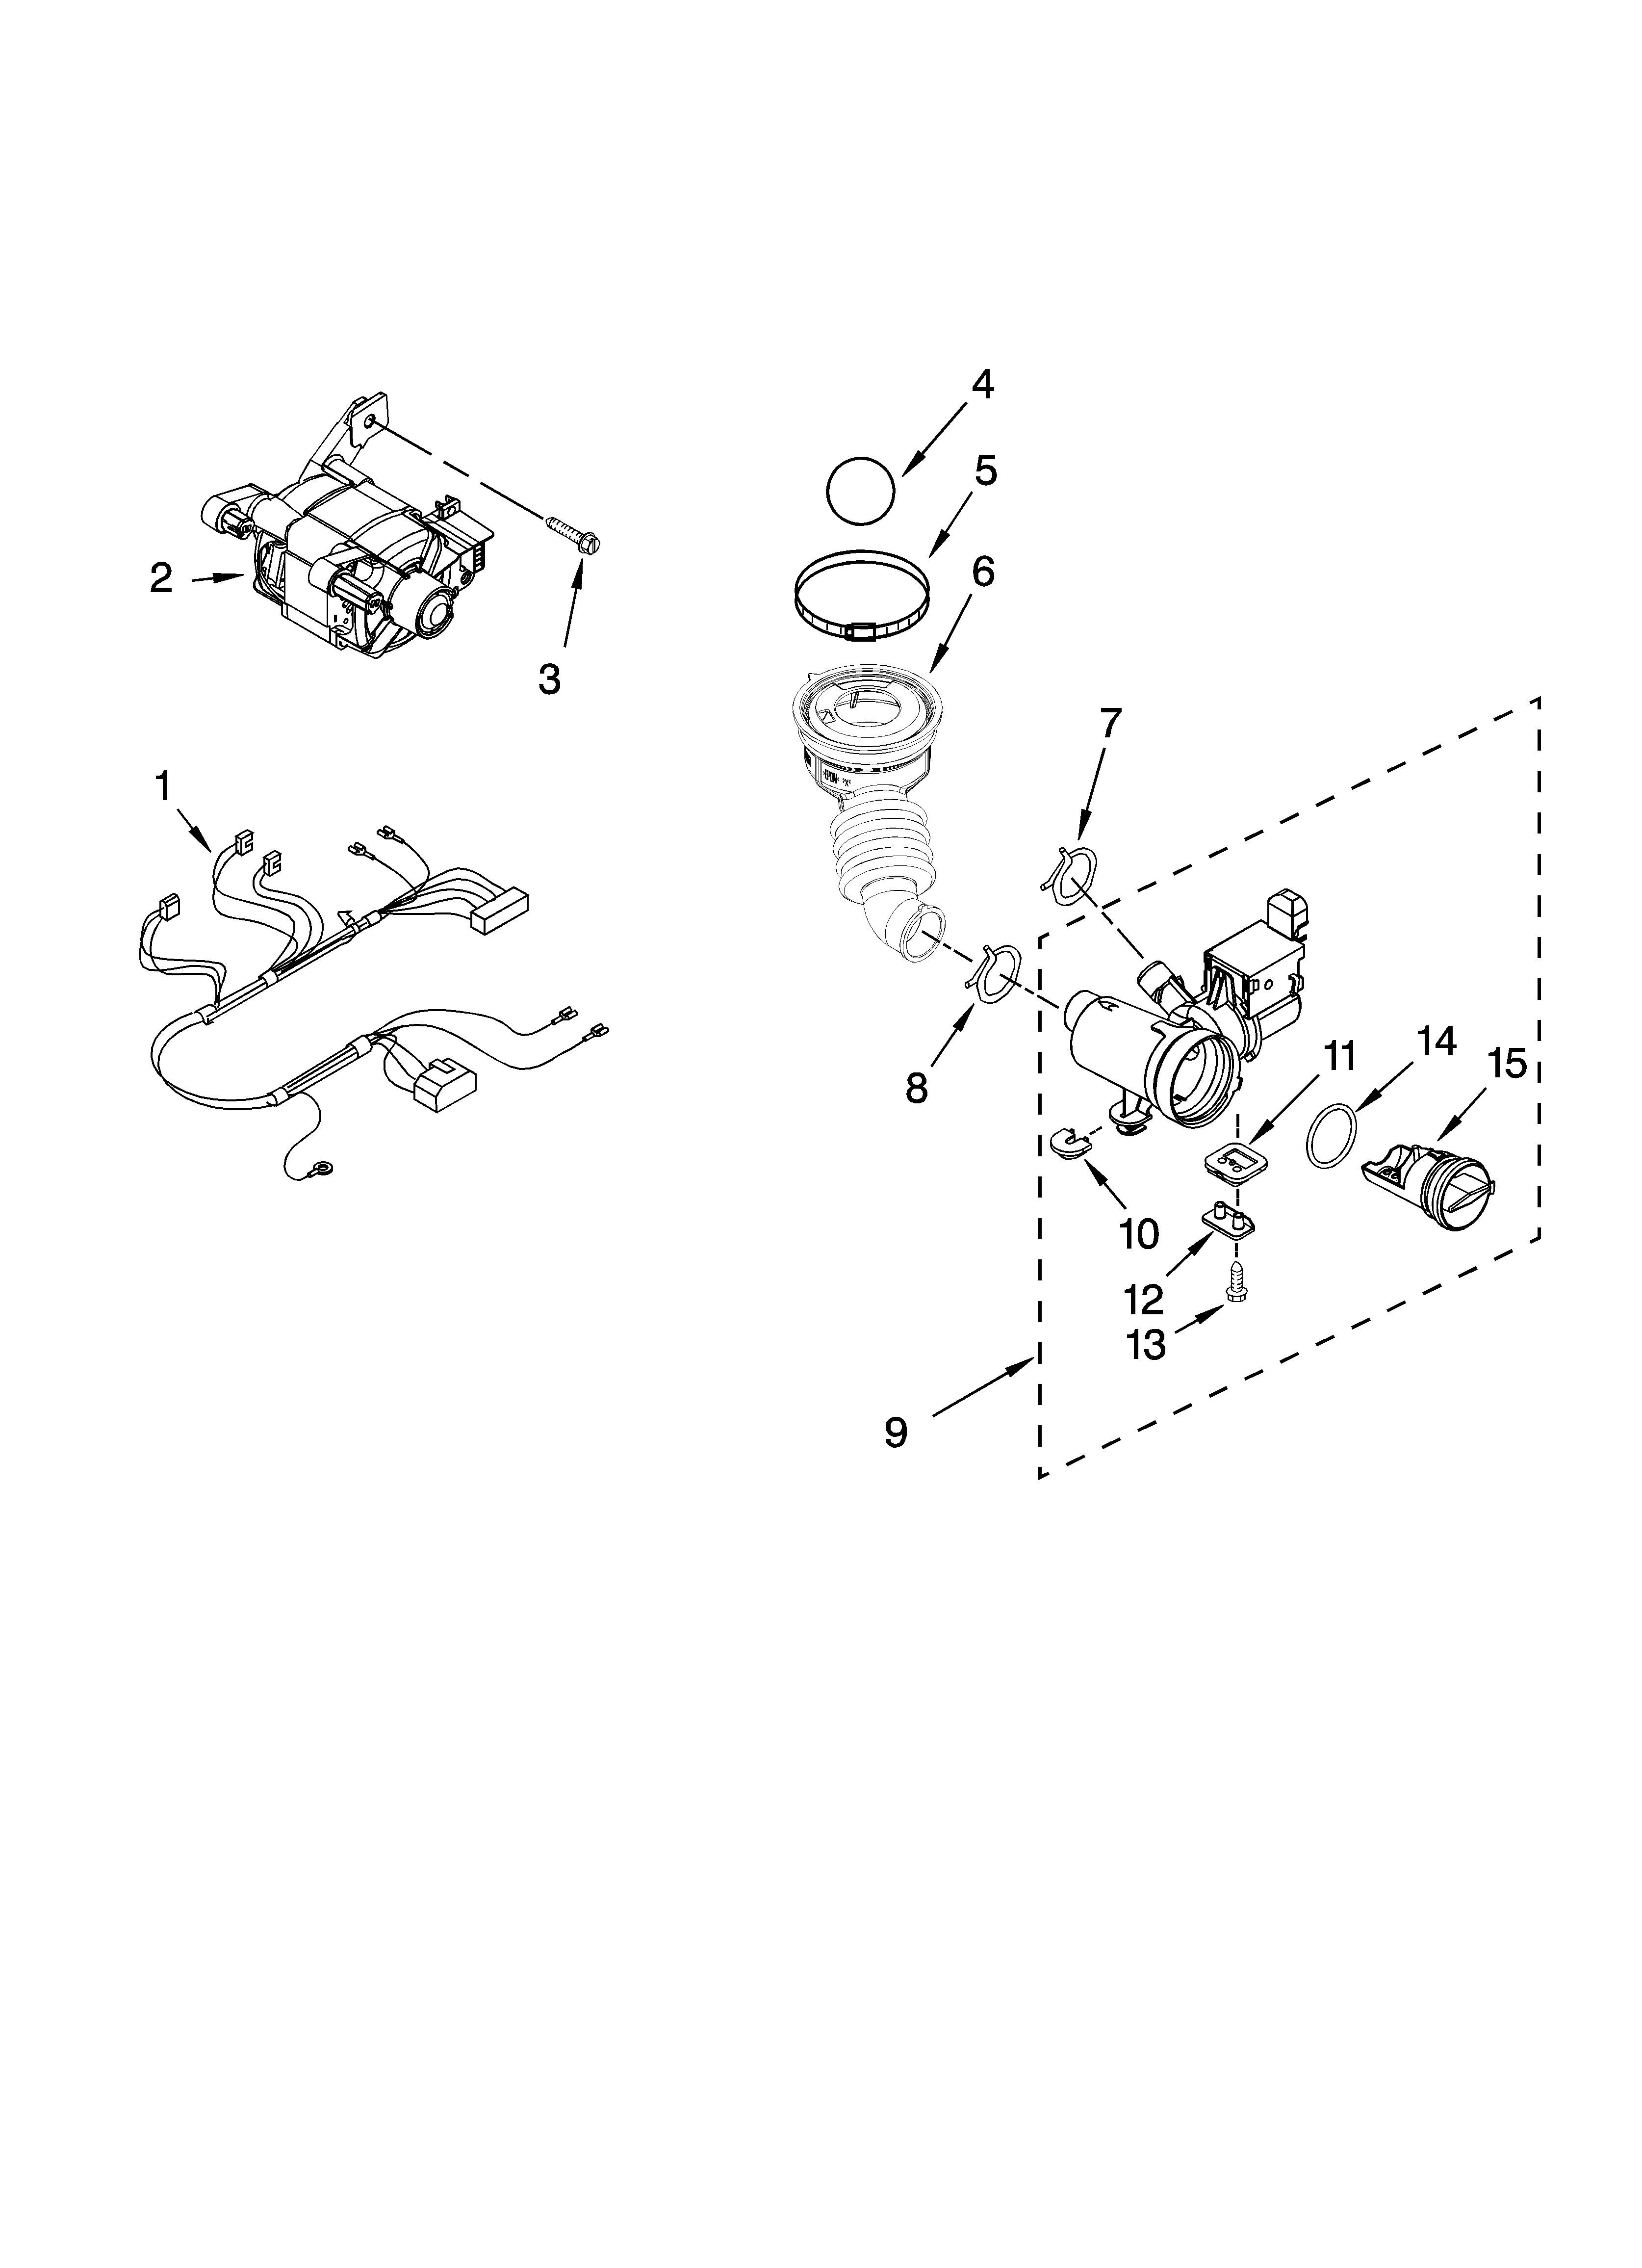 PUMP AND MOTOR PARTS, OPTIONAL PARTS (NOT INCLUDED